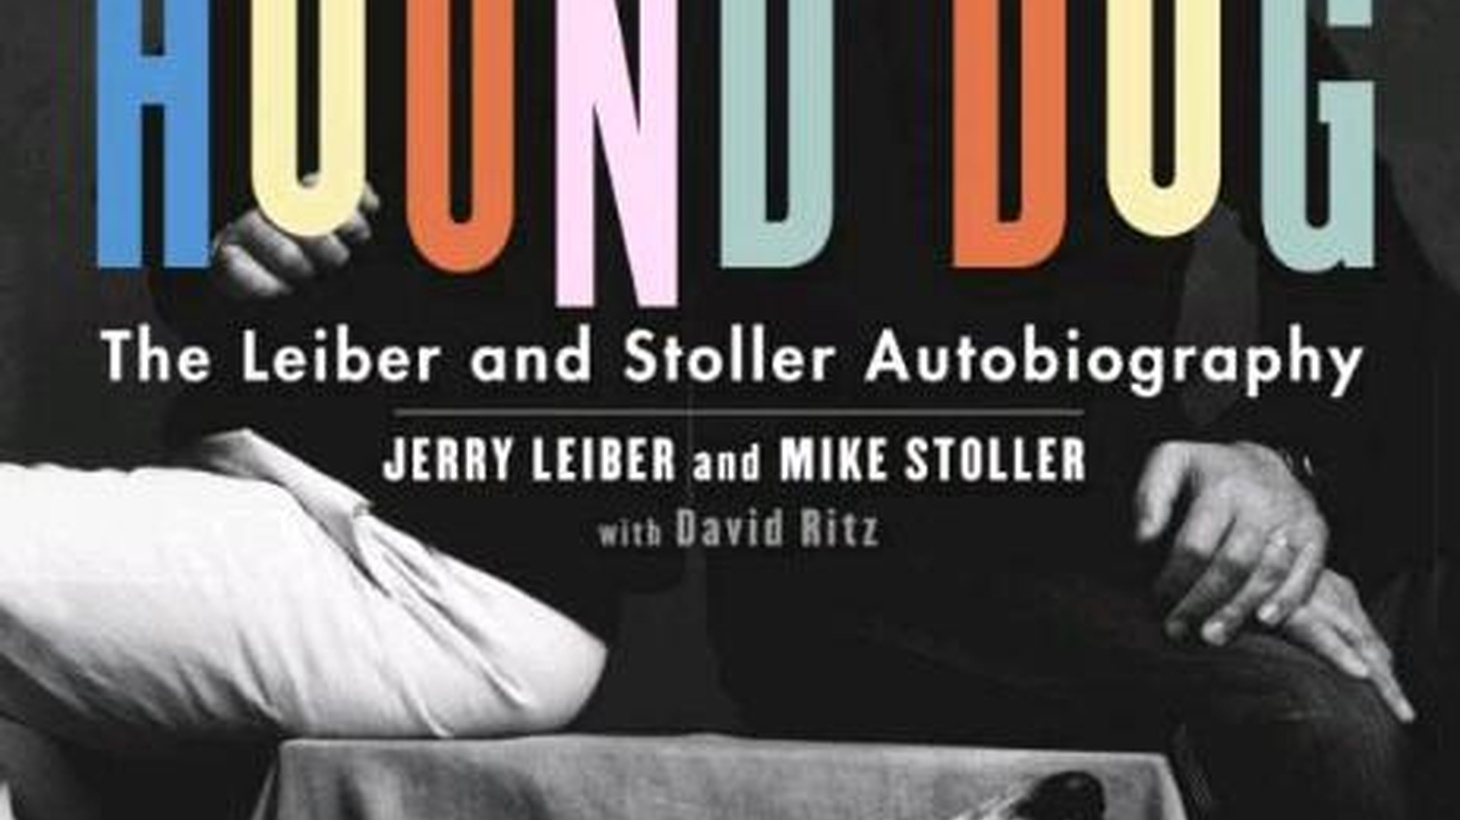 Legendary songwriters Jerry Leiber and Mike Stoller are Gary Calamar's special guests in the 10 o'clock hour, to talk about their new autobiography, Hound Dog.